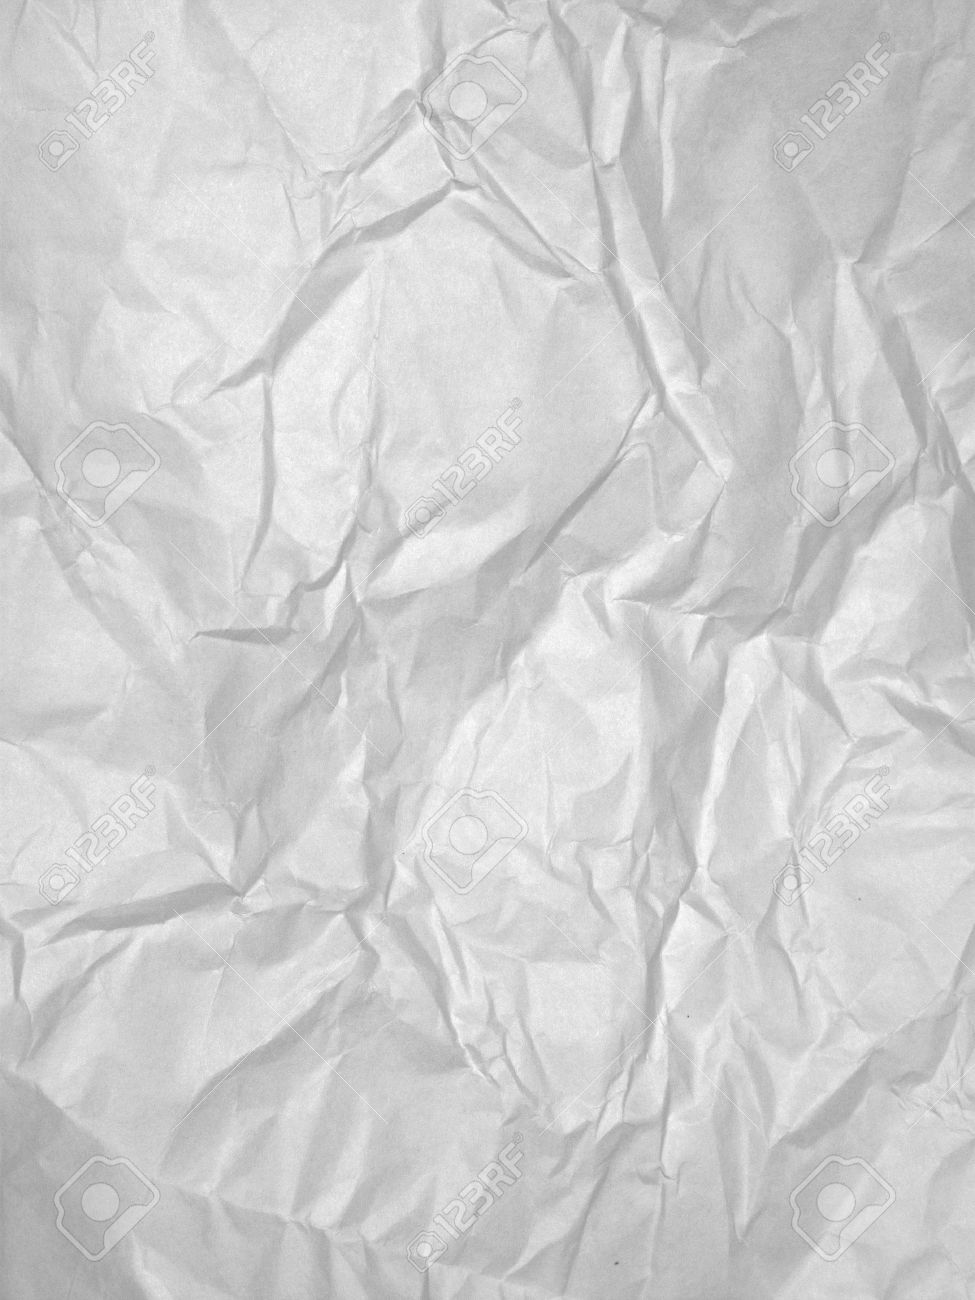 Rumpled bed sheet - Stock Photo White Sheet Of Crumpled Textured Paper For A Background